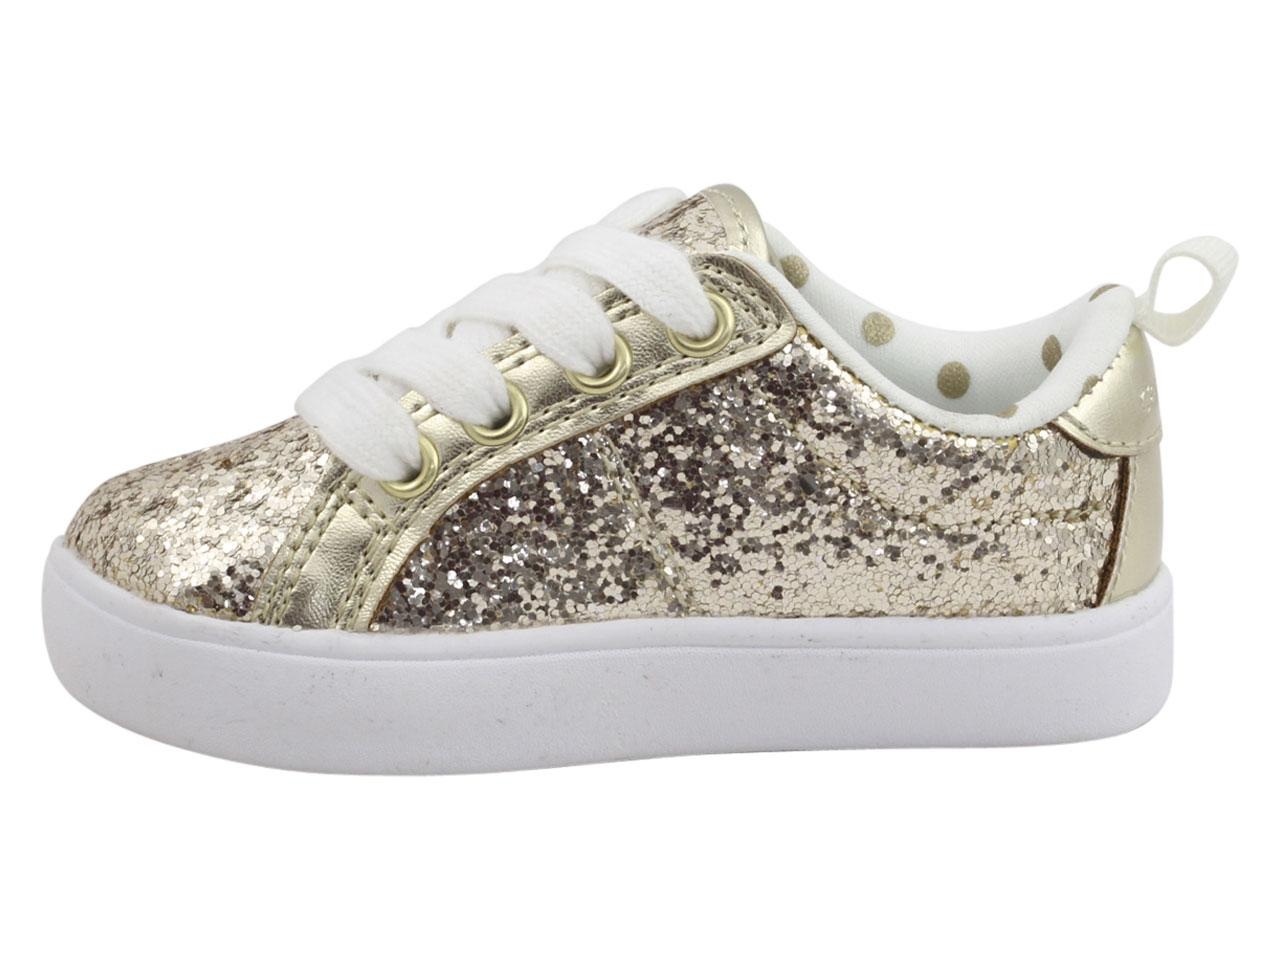 6802e0c0374 Carter s Toddler Little Girl s Emilia-3 Glitter Sneakers Shoes by Carter s